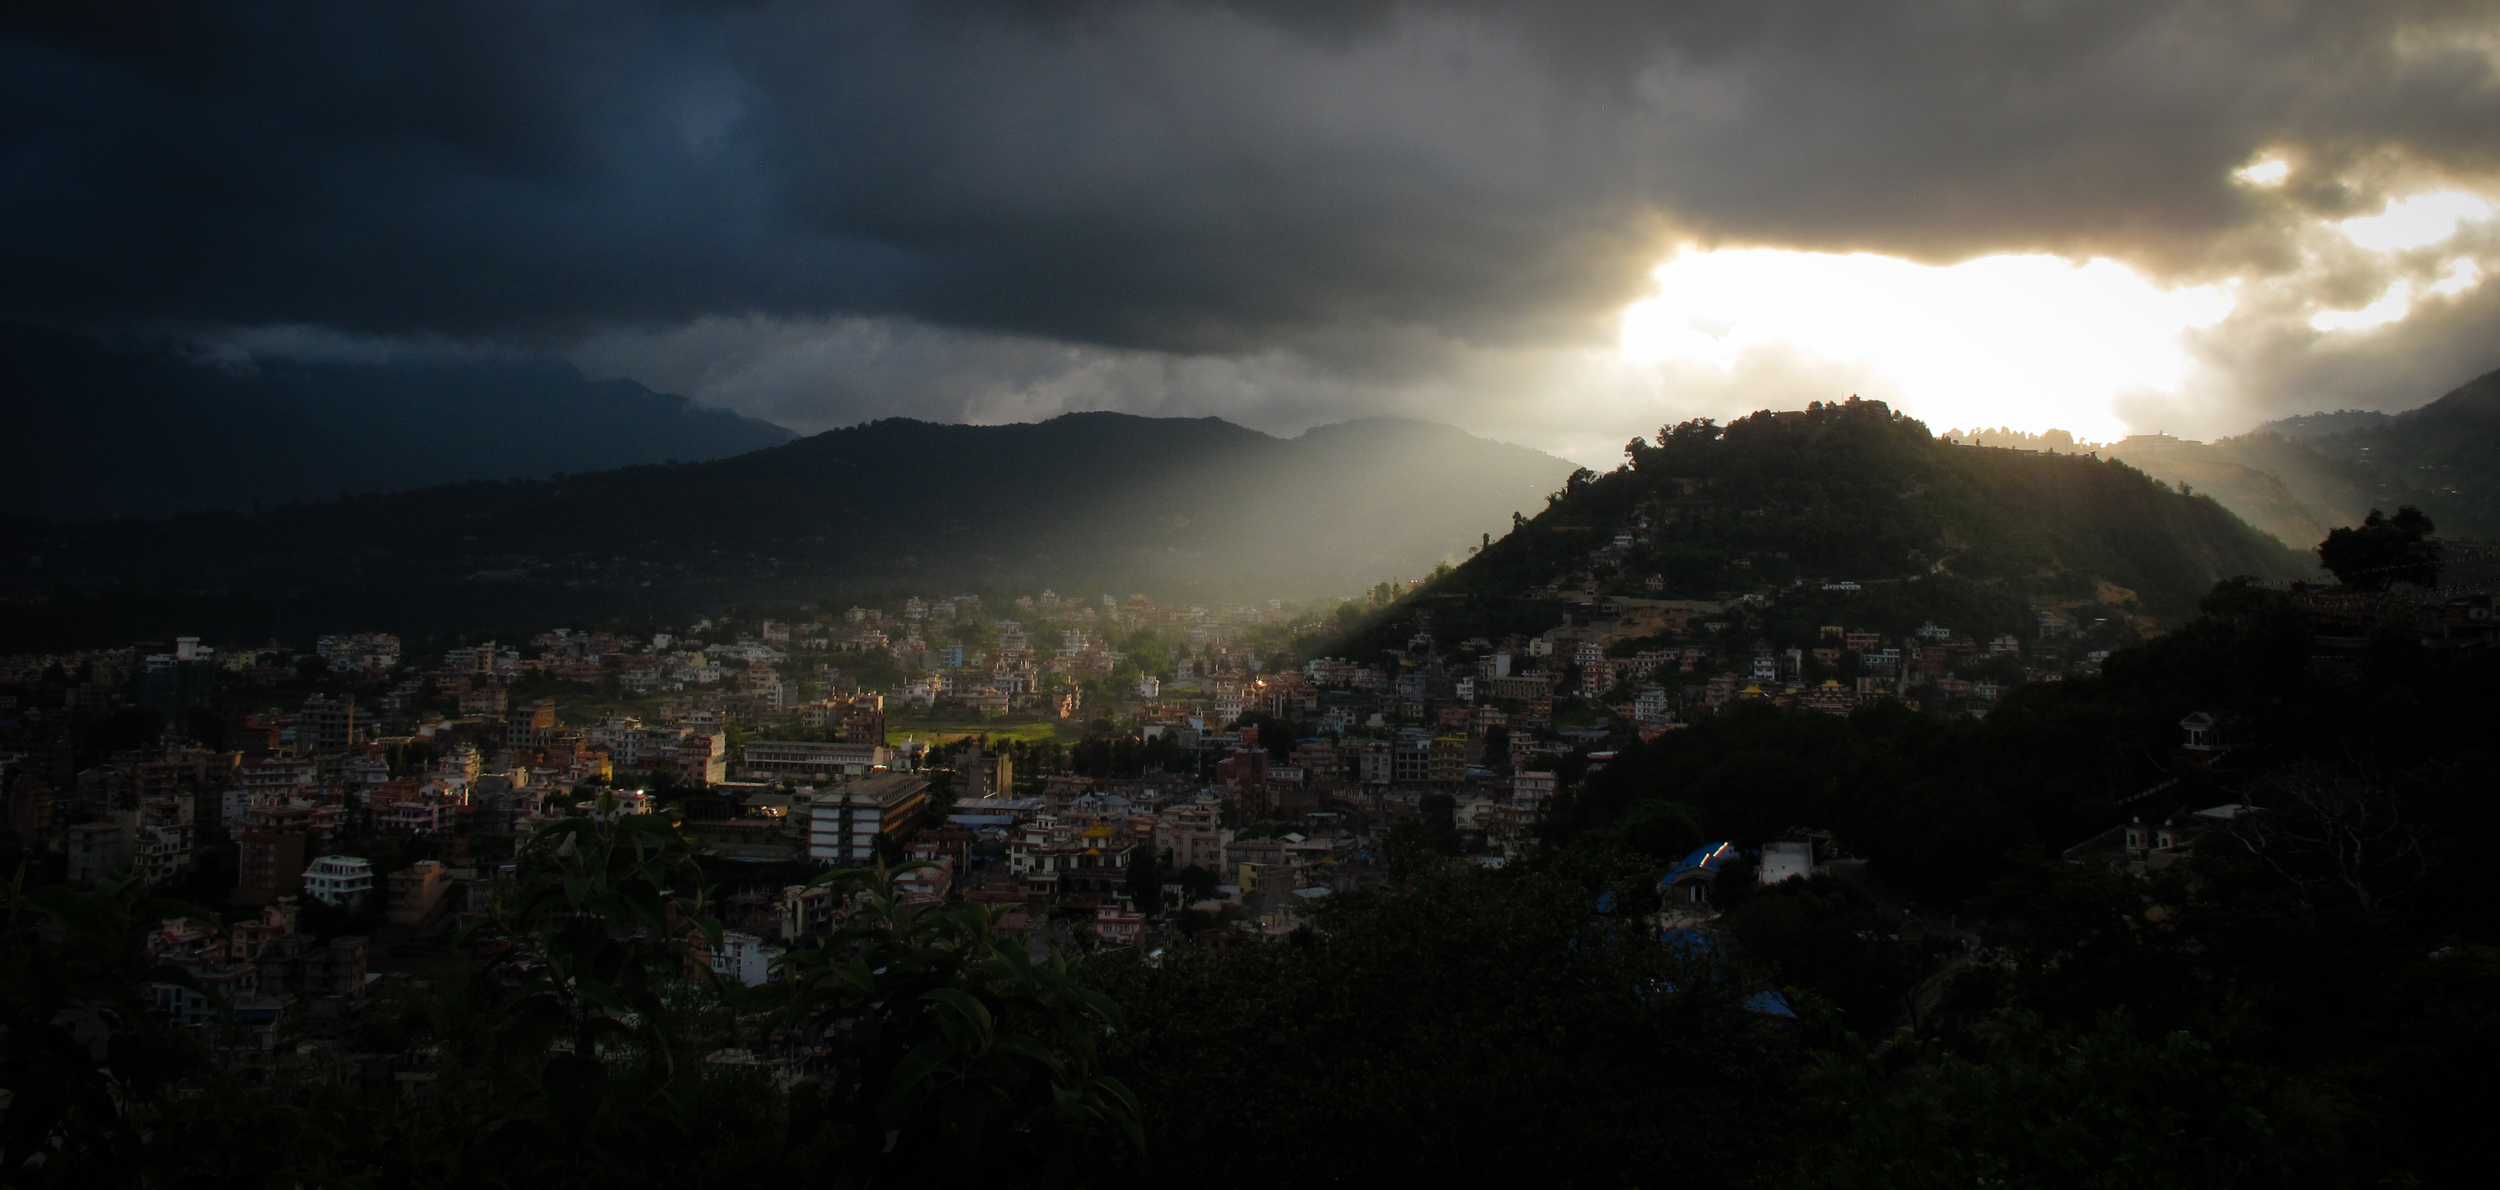 Light streaming through monsoon clouds, Kathmandu, Nepal